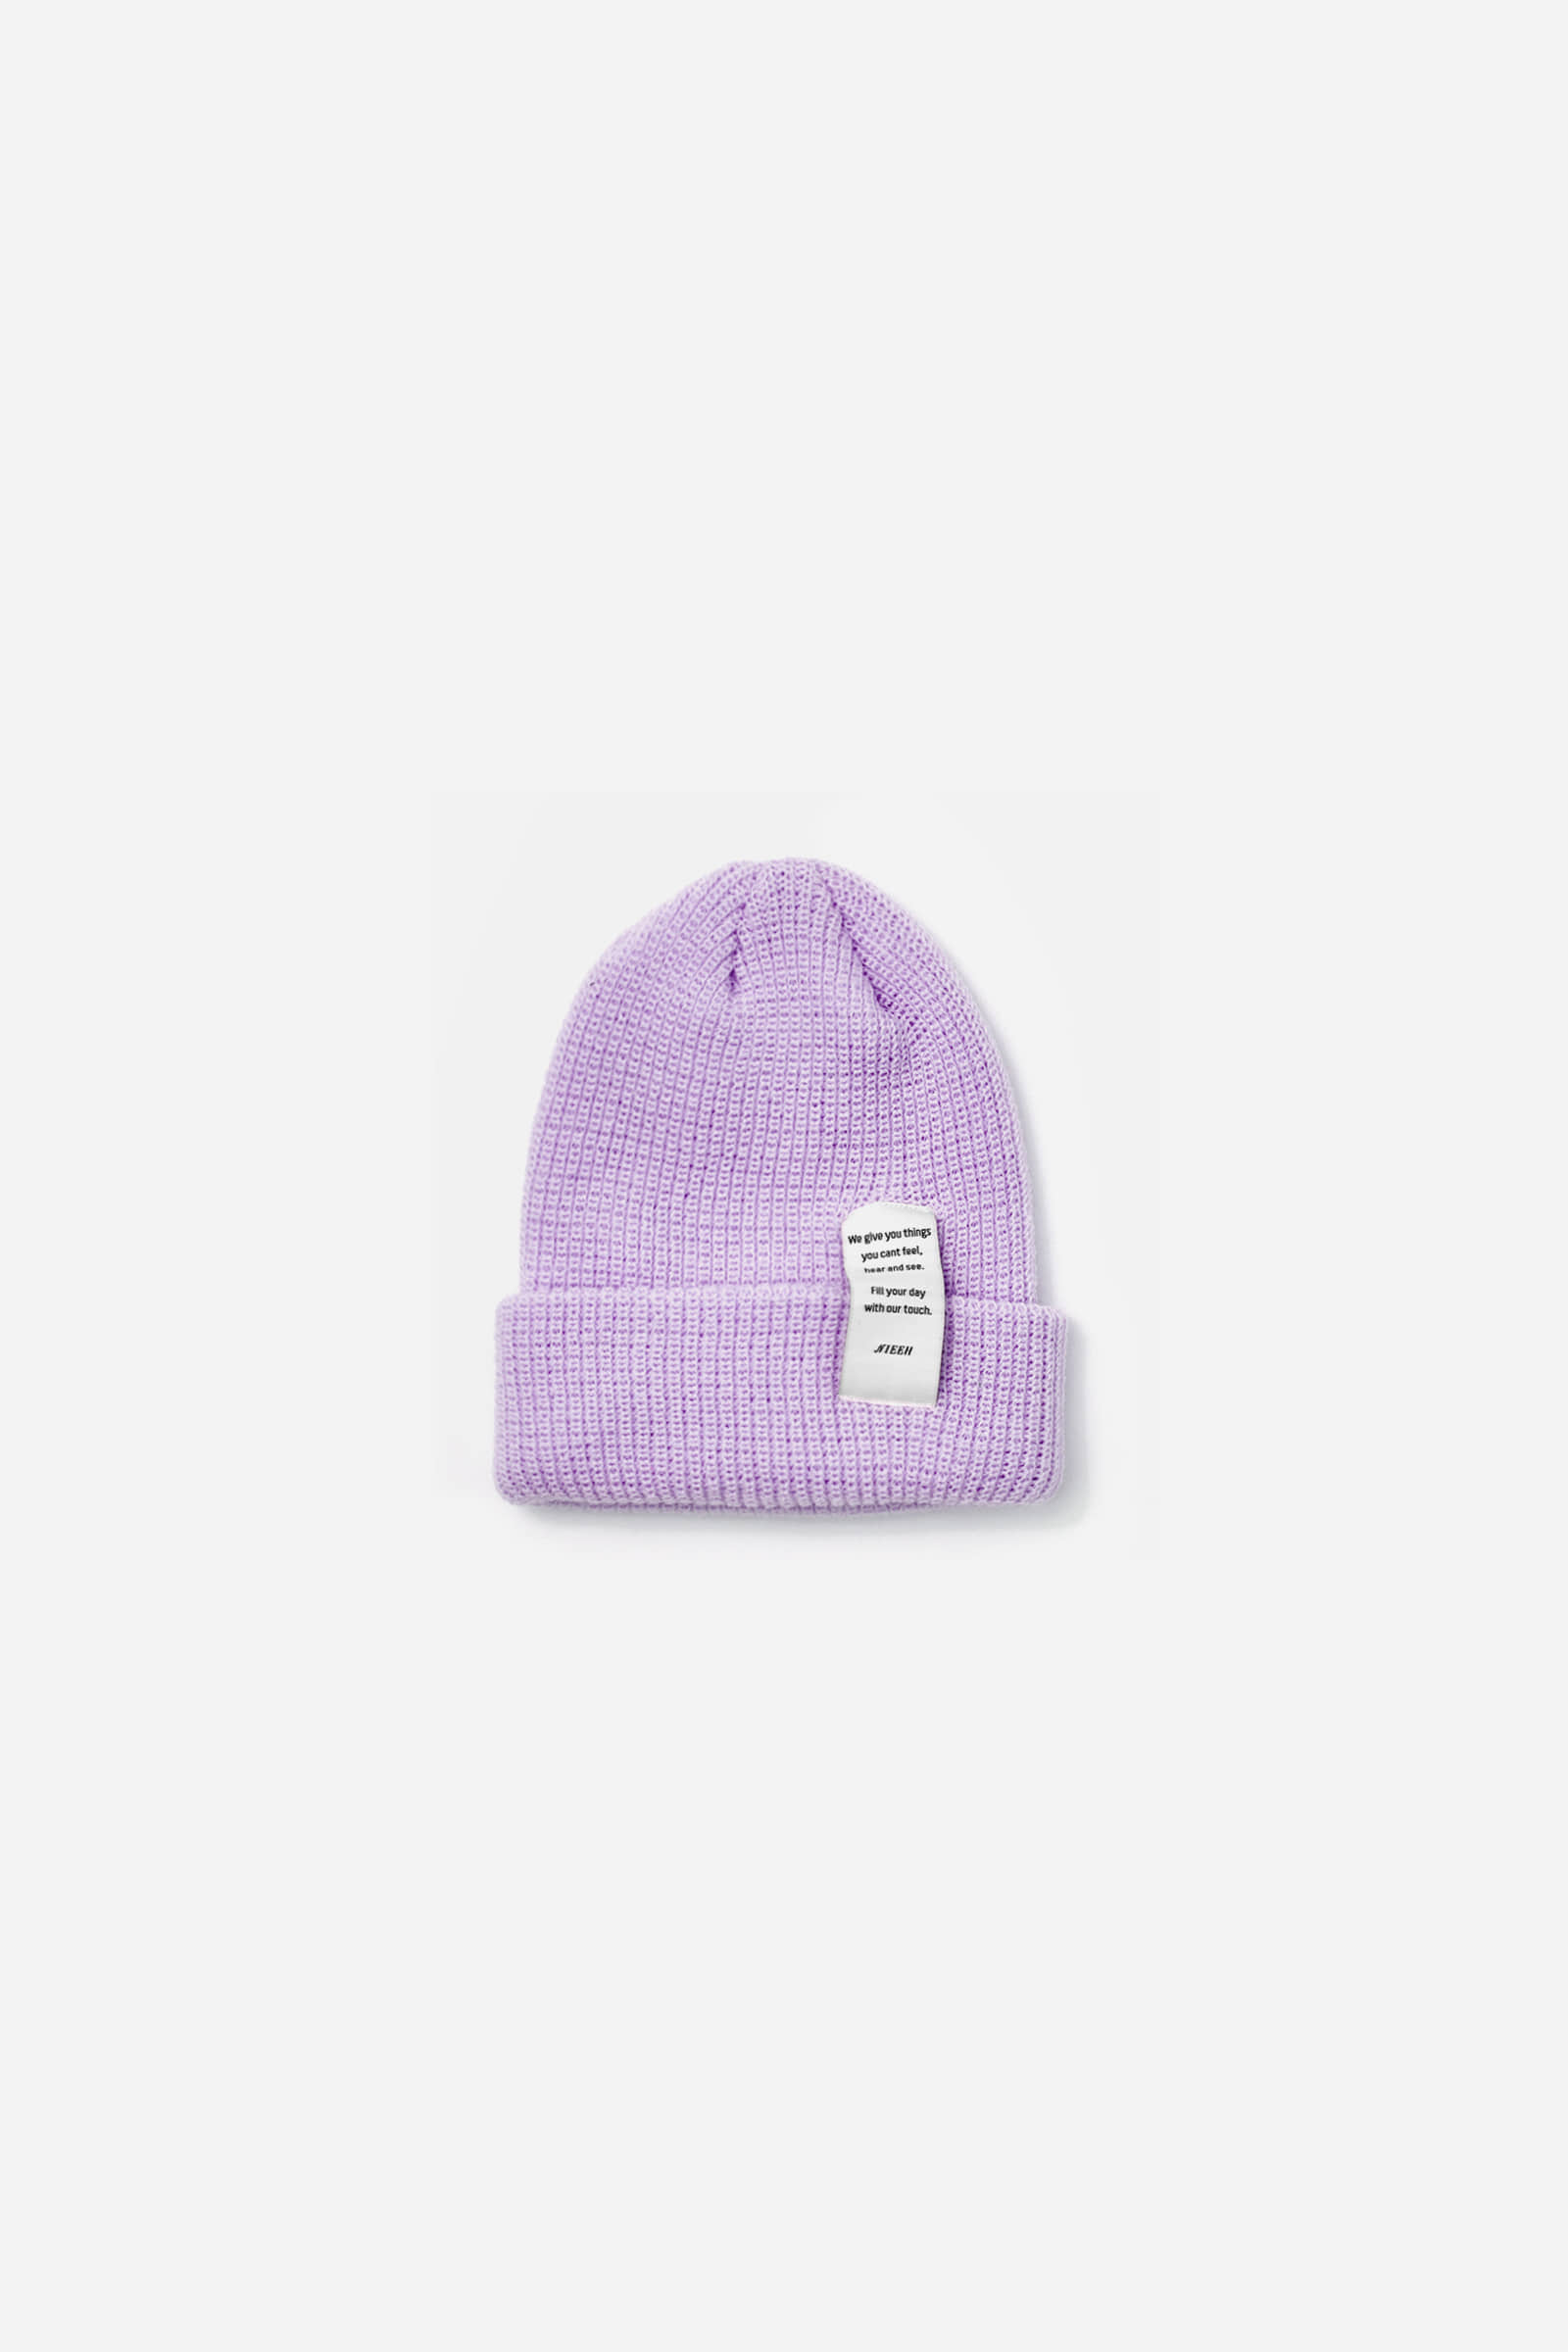 Nieeh Pastel Long Beanie_LIGHT PURPLE